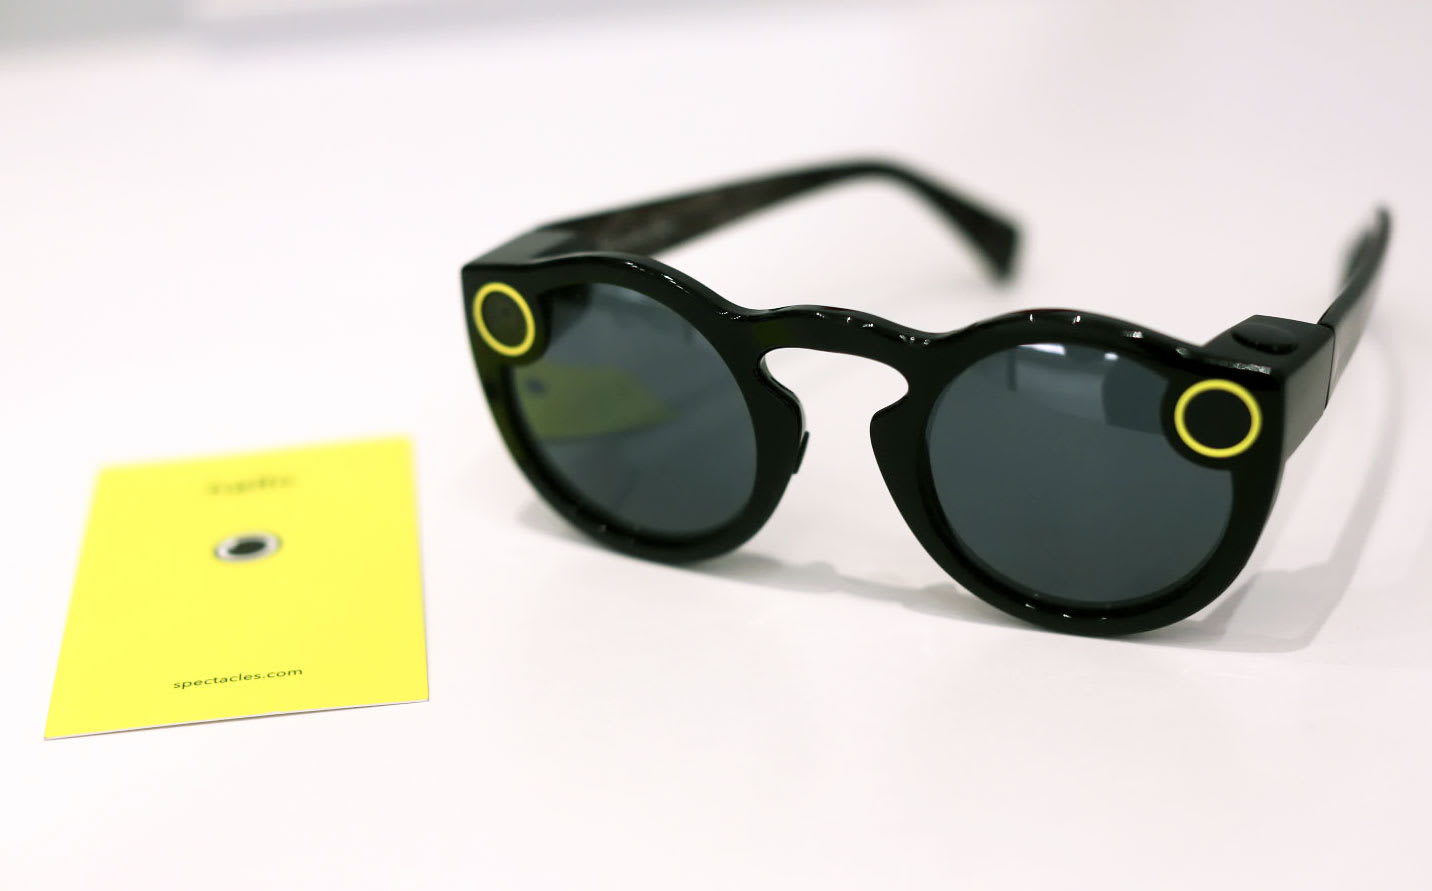 3fc5920d45 Prescription lenses for Snapchat s Spectacles just got cheaper